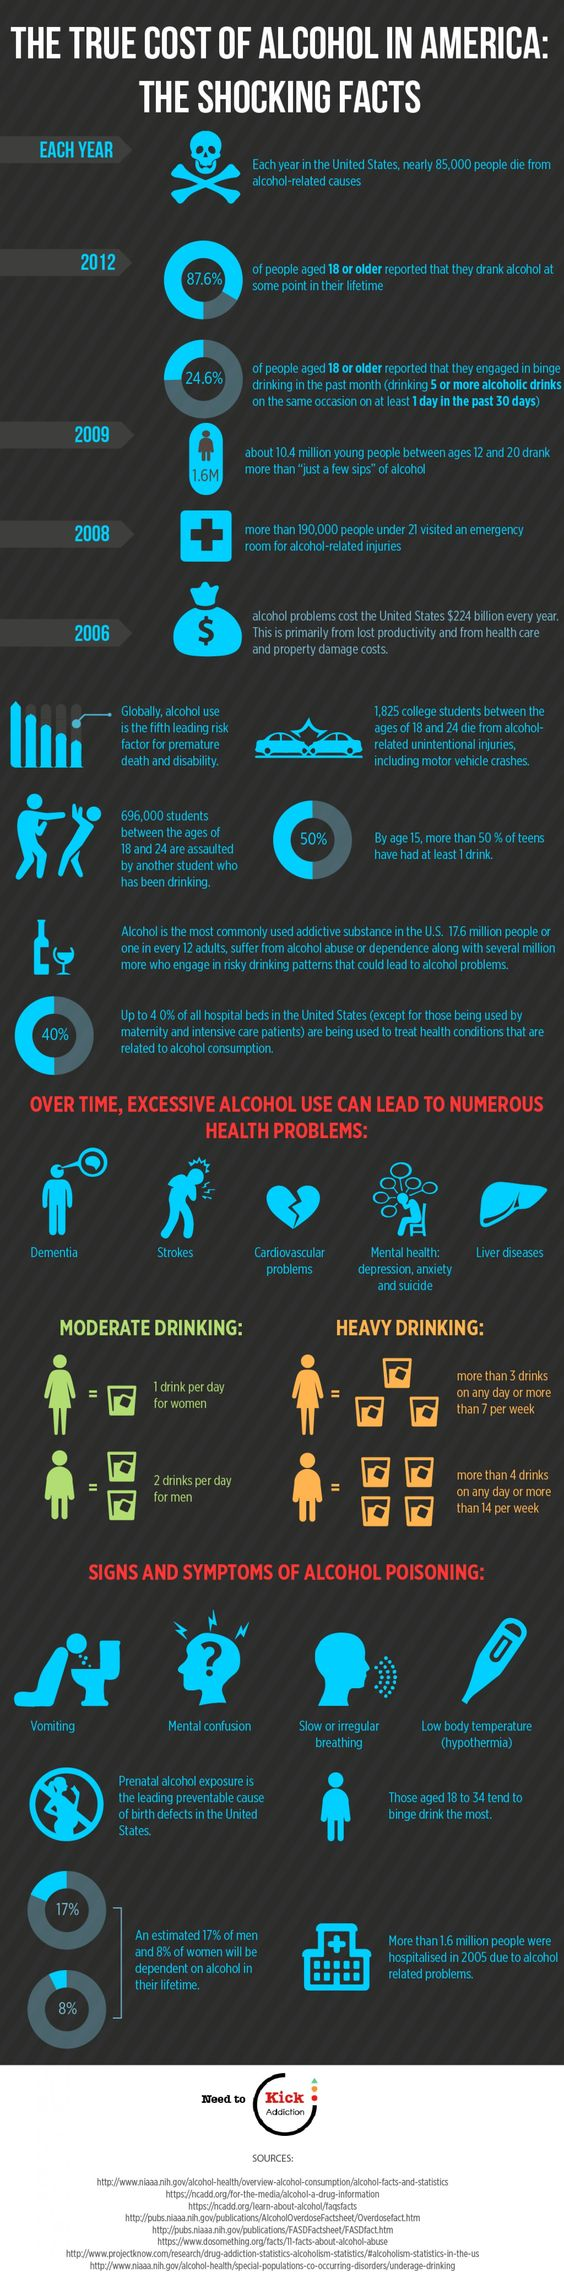 The true cost of alcohol in America Infographic